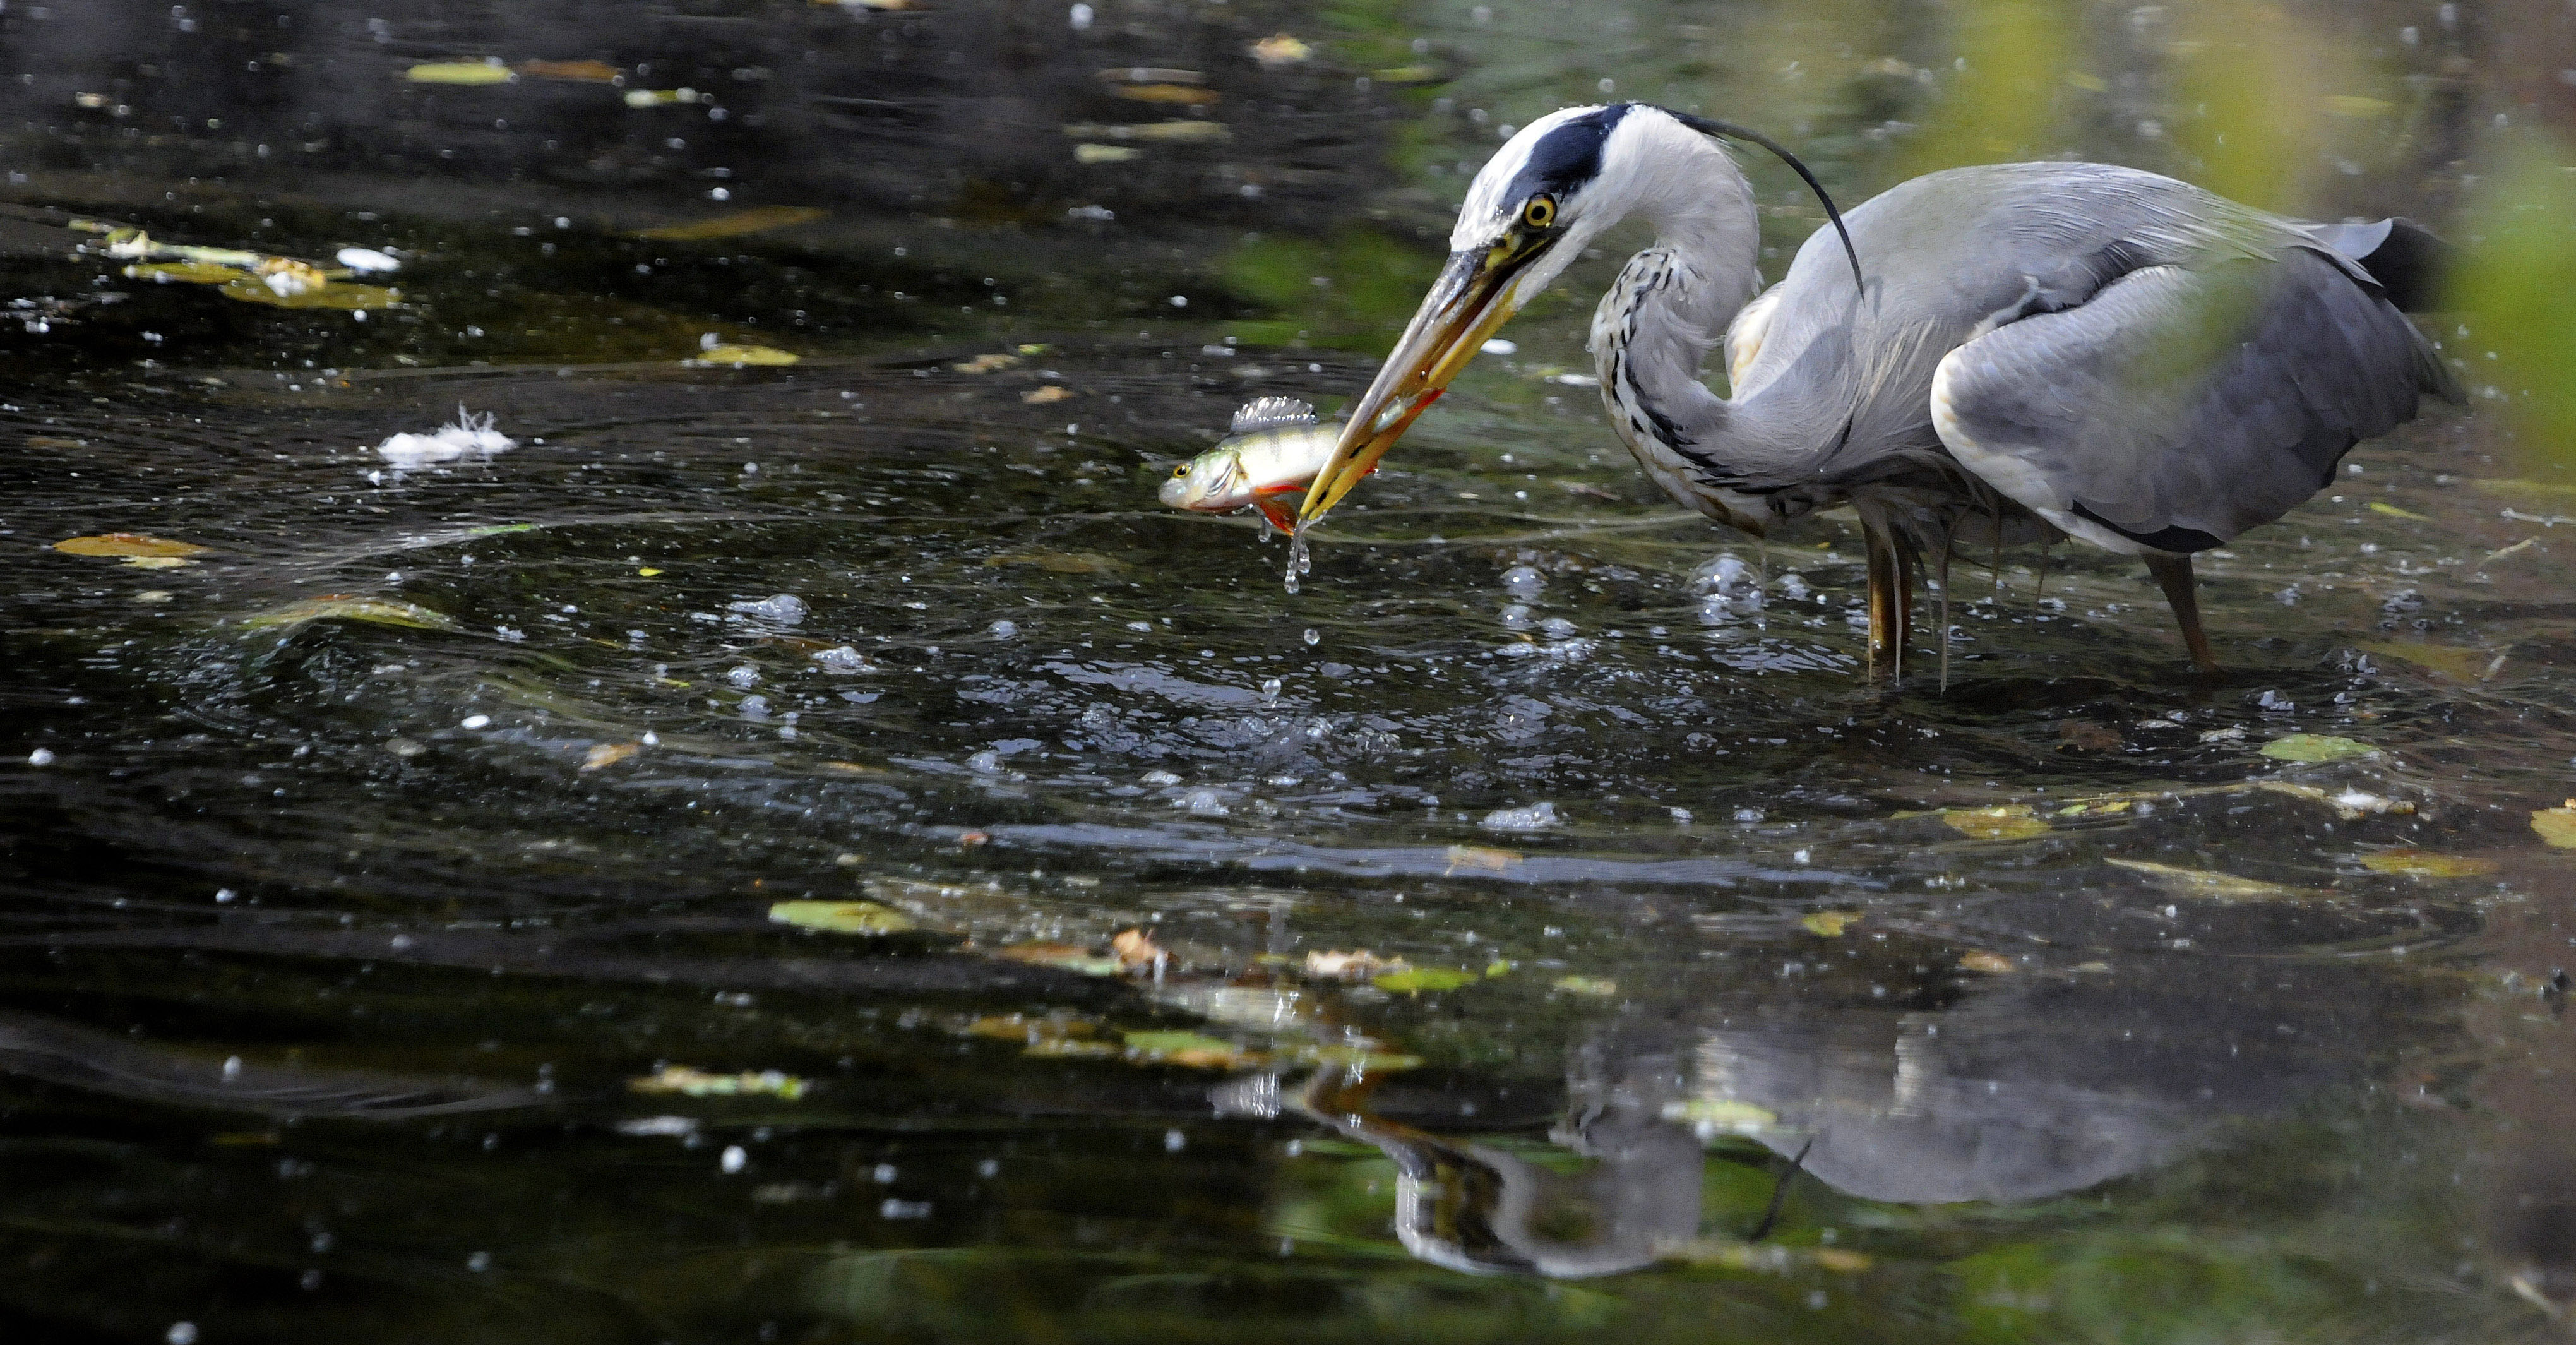 Heron, grey (Ardea cinera), DE ©Johannes Ratermann